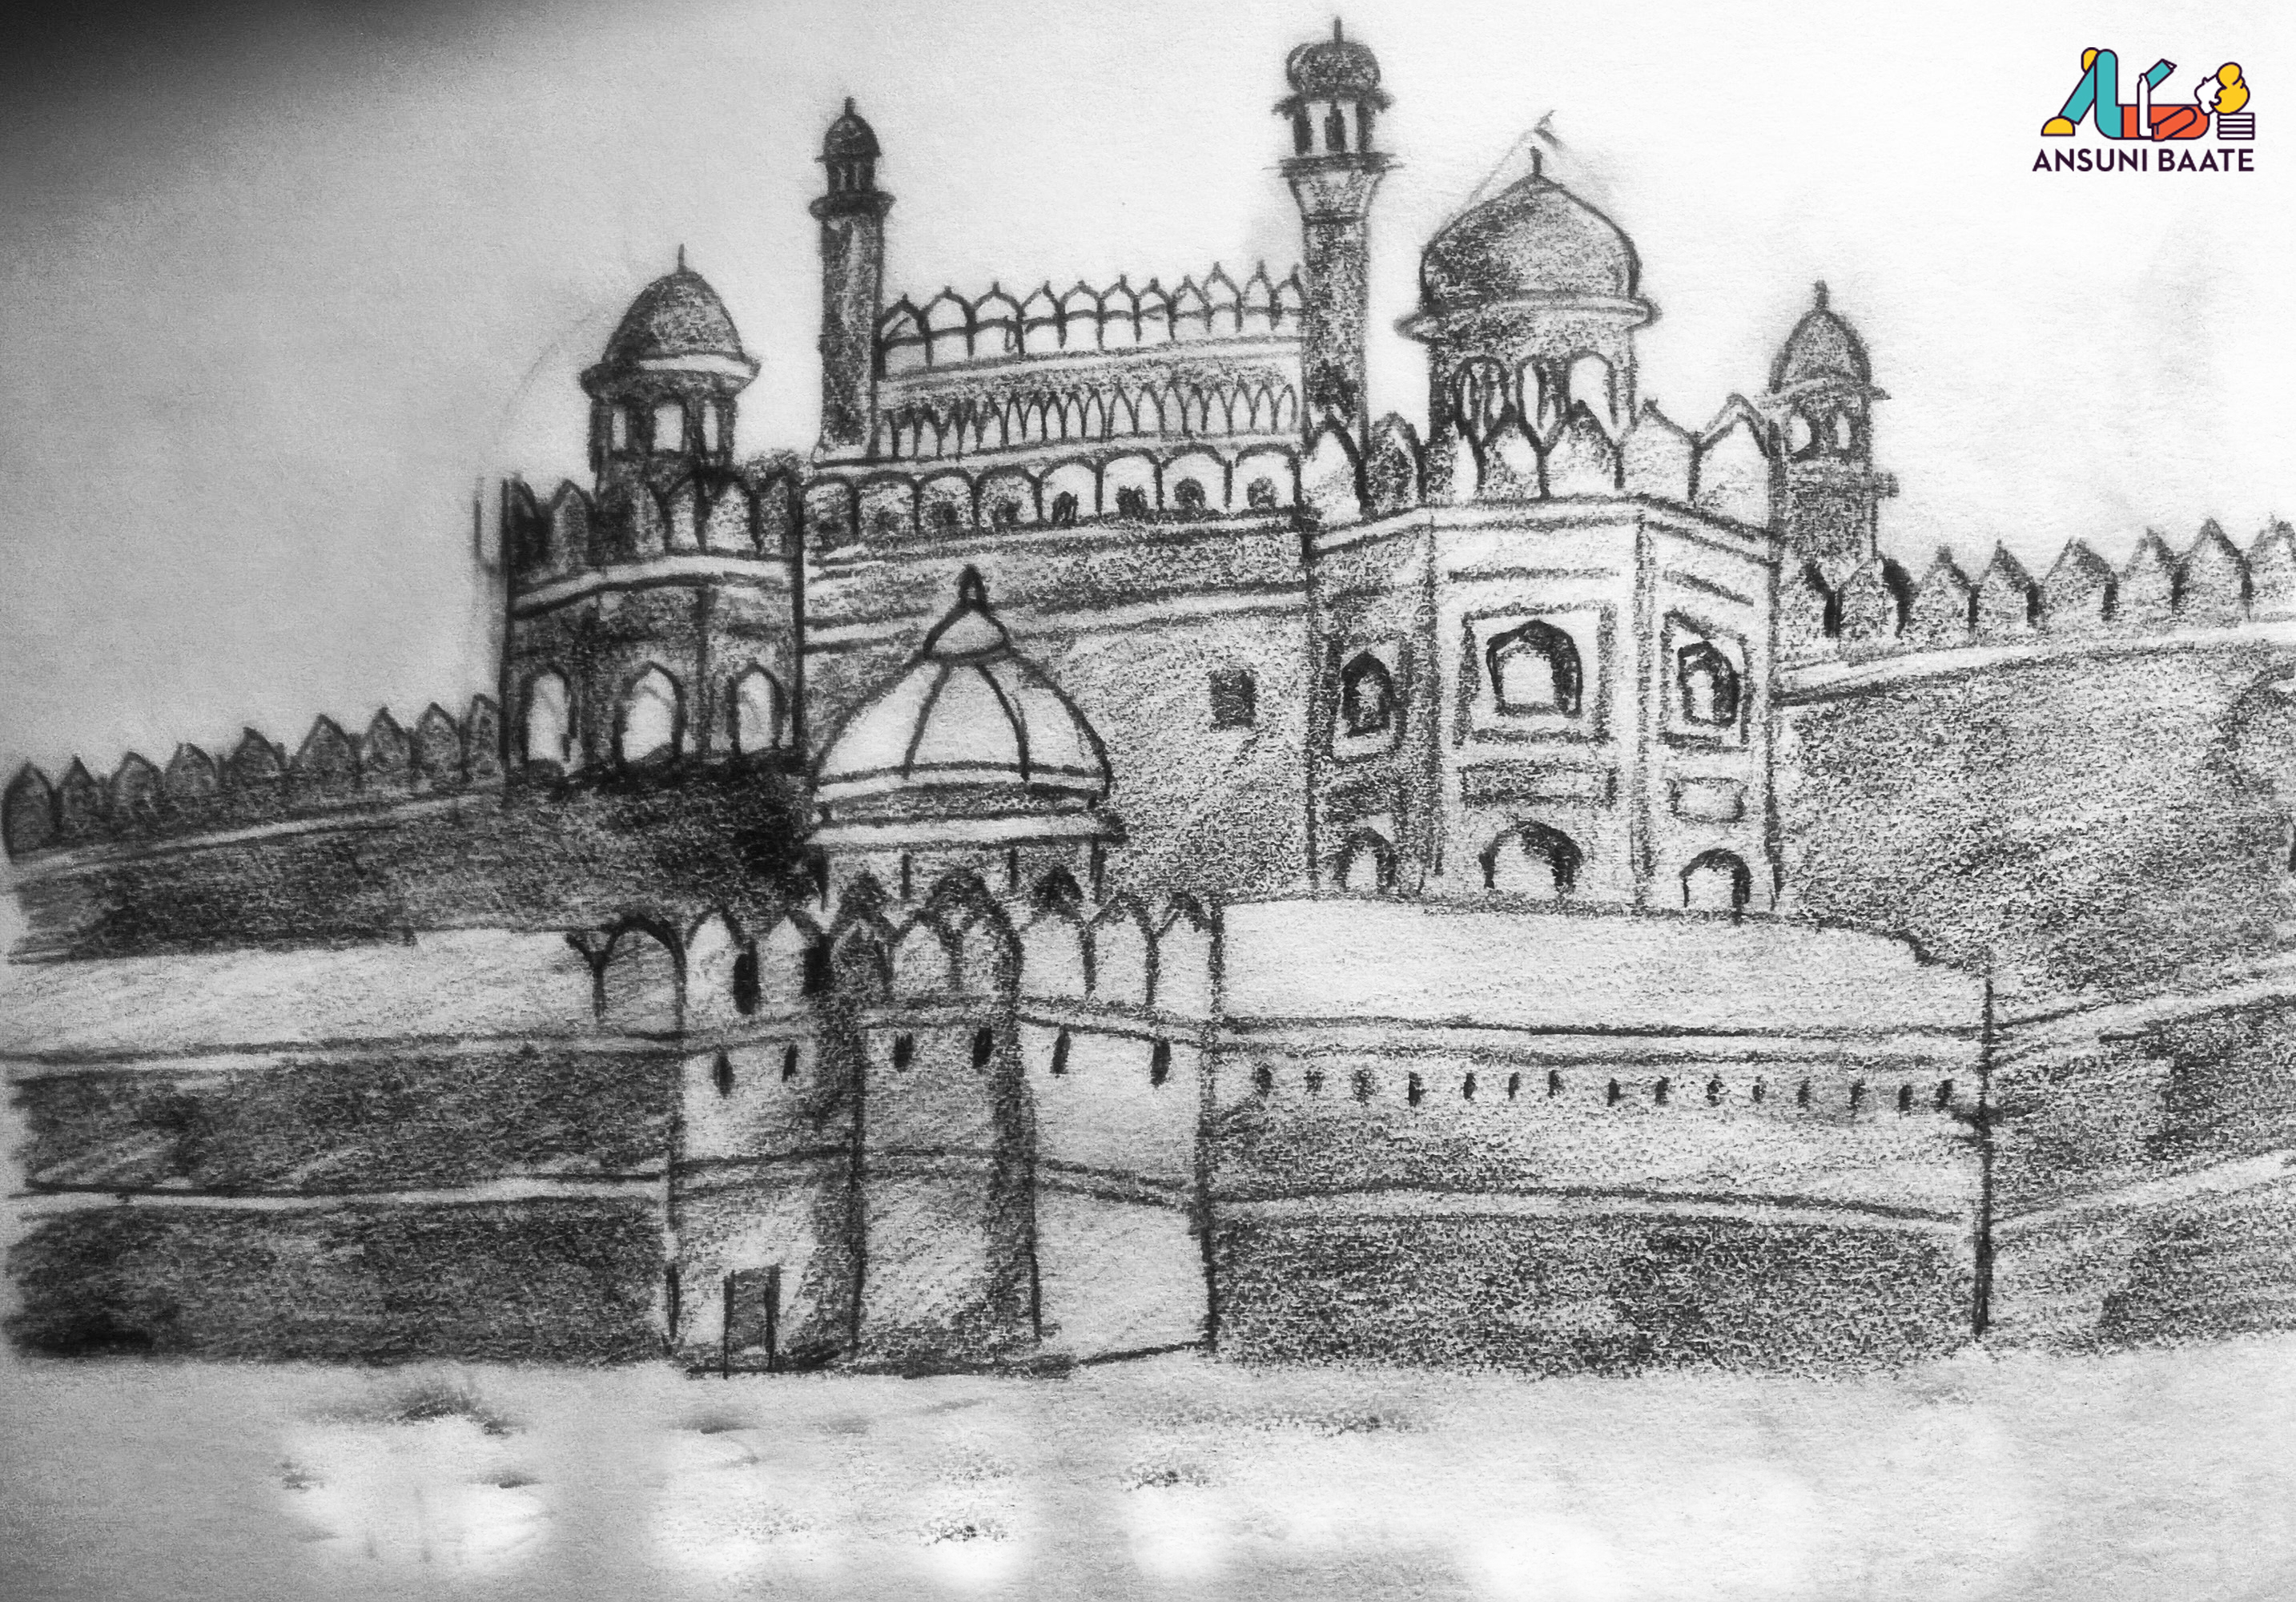 ,lal qila images free full hd download ,delhi ka lal kila wallpaper ,red fort hd wallpaper download ,lal kila ki photo ,lal kila nature photos ,images of red fort for drawing ,red fort photo gallery ,red fort delhi images ,red fort old images ,red fort big picture ,दिल्ली के लाल किला का इमेज वॉलपेपर पिक्स फोटो गैलरी एचडी डाउनलोड